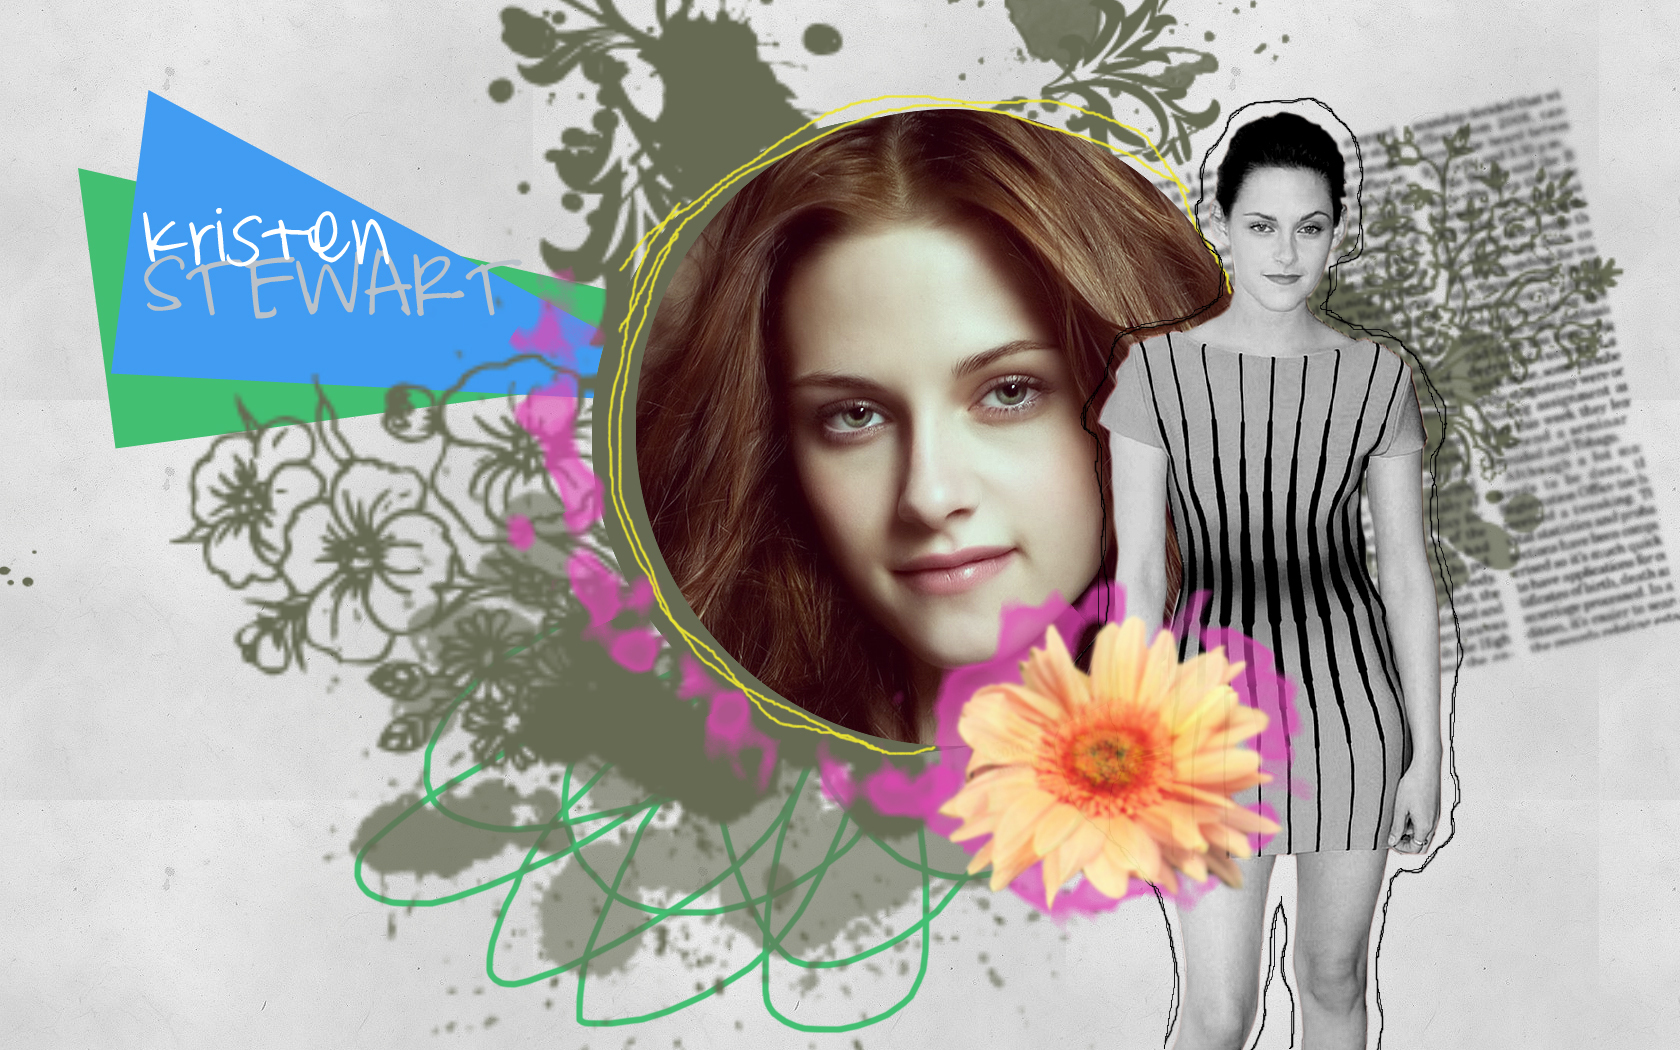 http://images2.fanpop.com/images/photos/7300000/Kristen-Stewart-Collage-Wallpaper-twilight-series-7316543-1680-1050.jpg